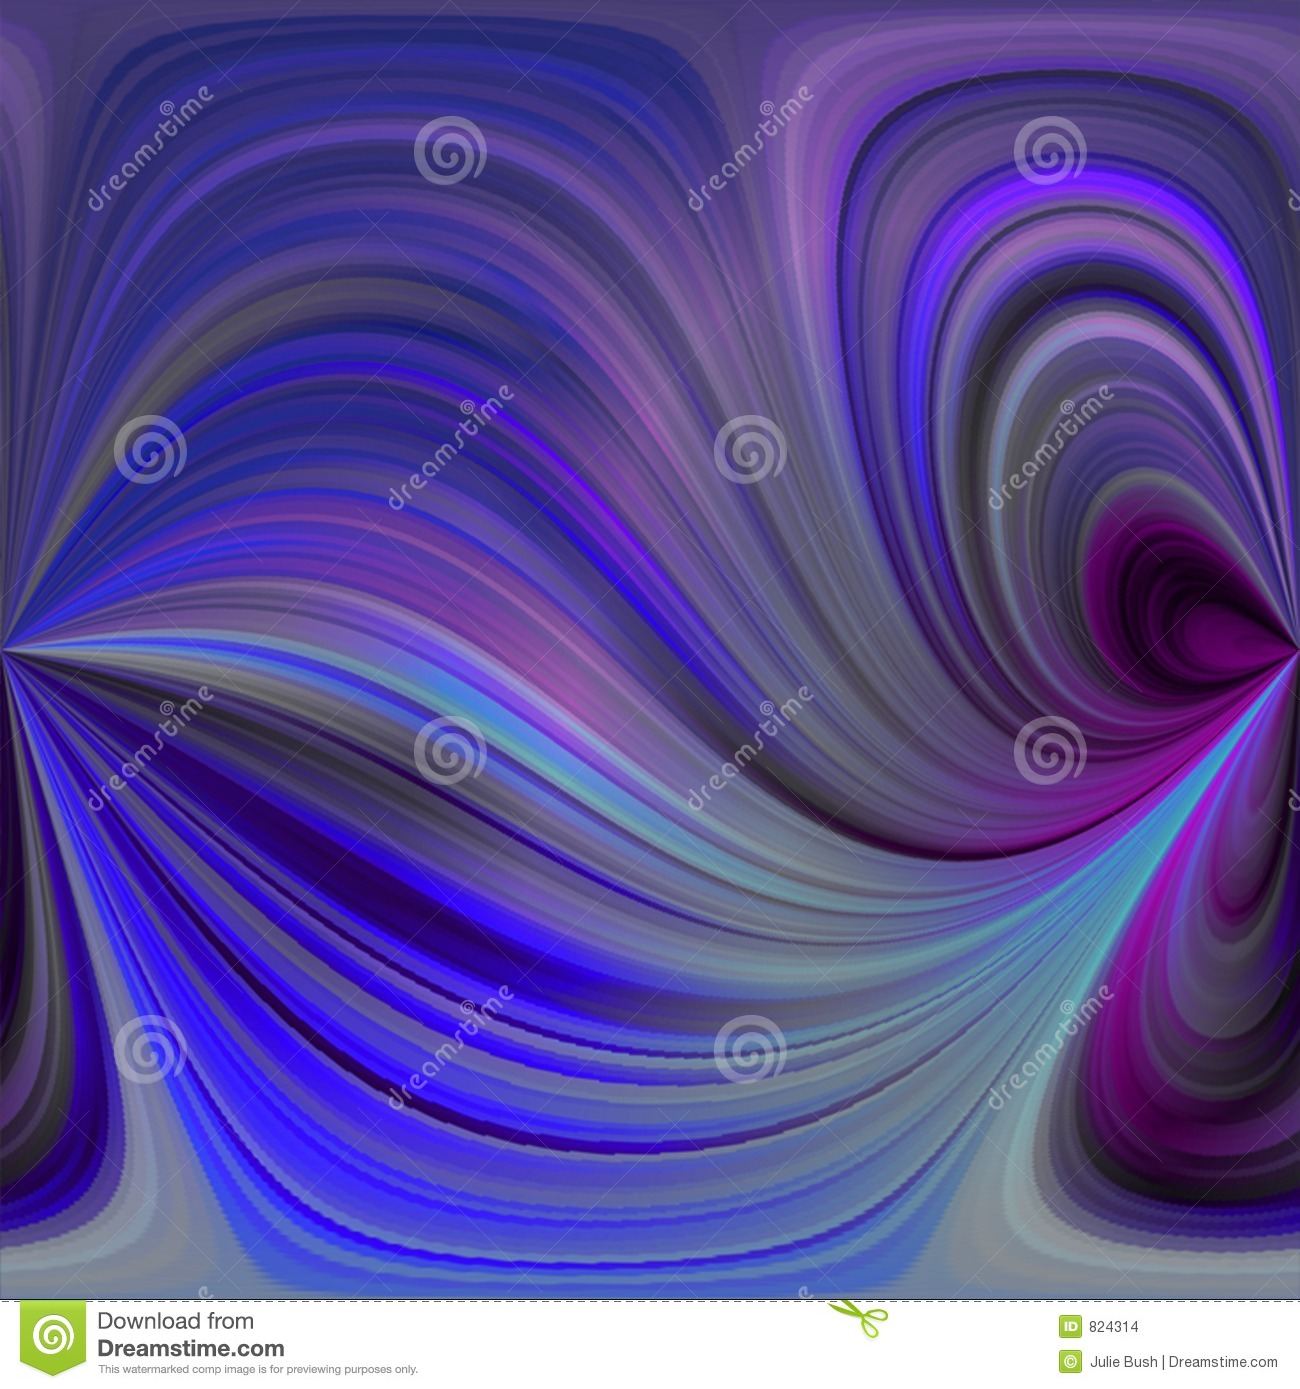 purple swirl background stock - photo #16